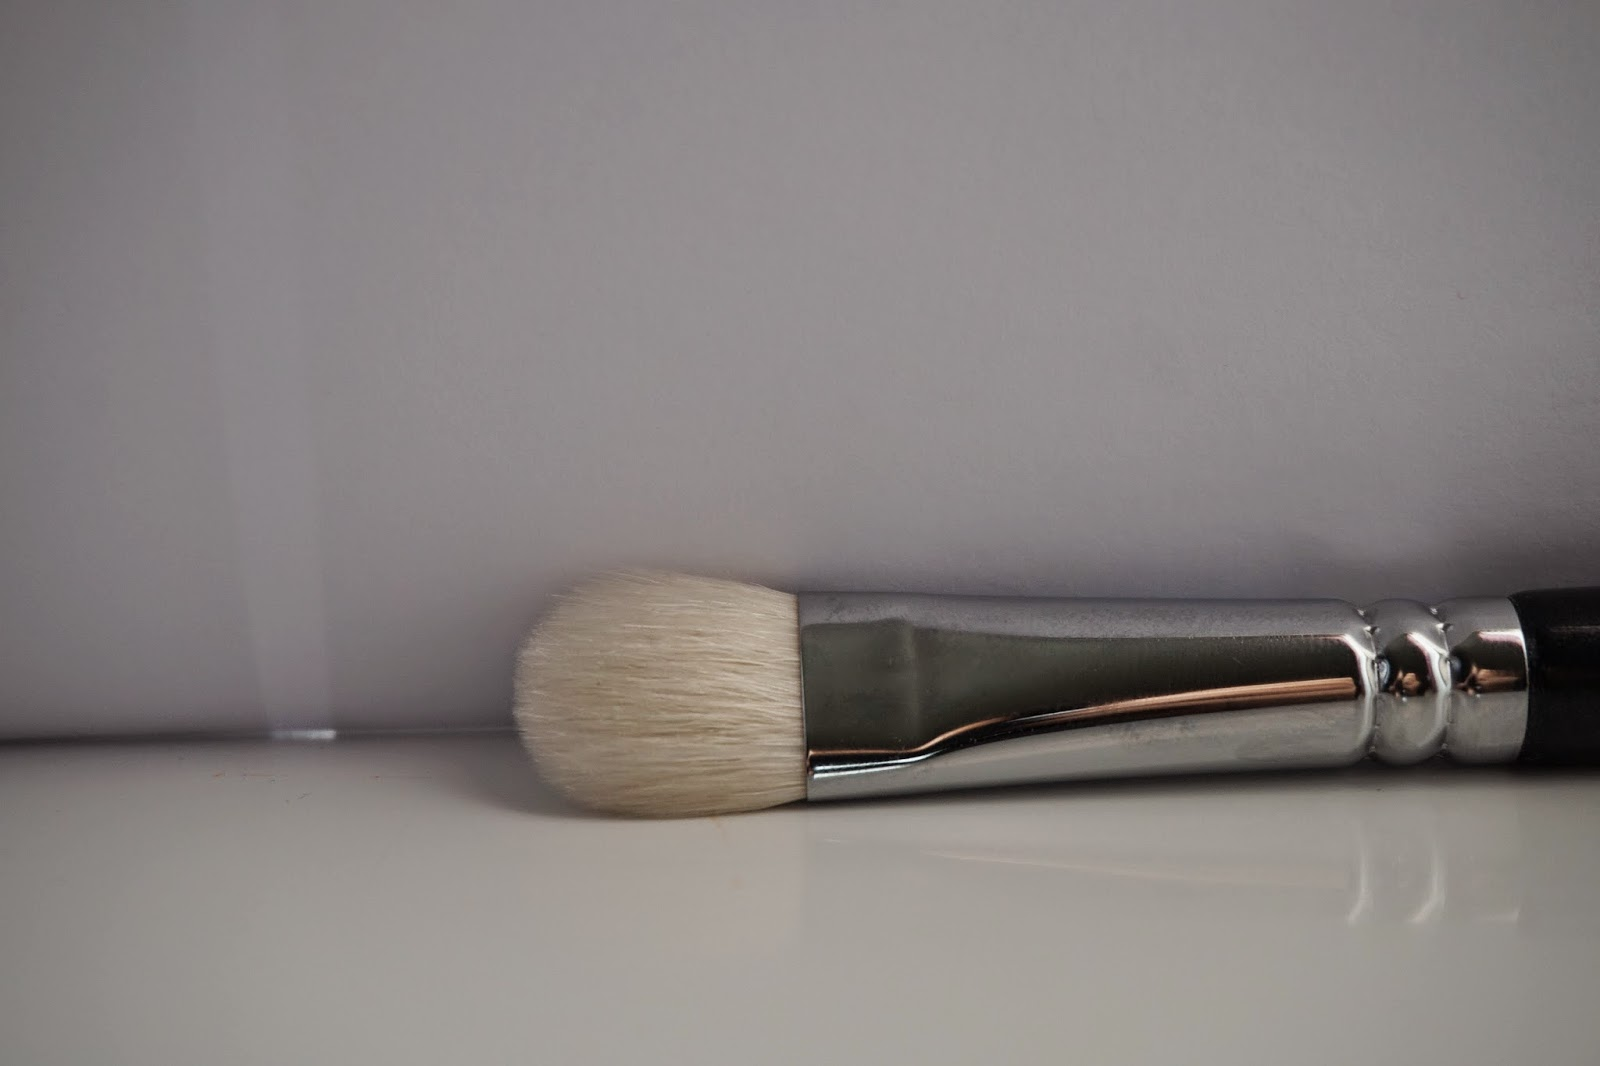 Review: Zoeva Eye Brushes - Dusty Foxes Beauty Blog